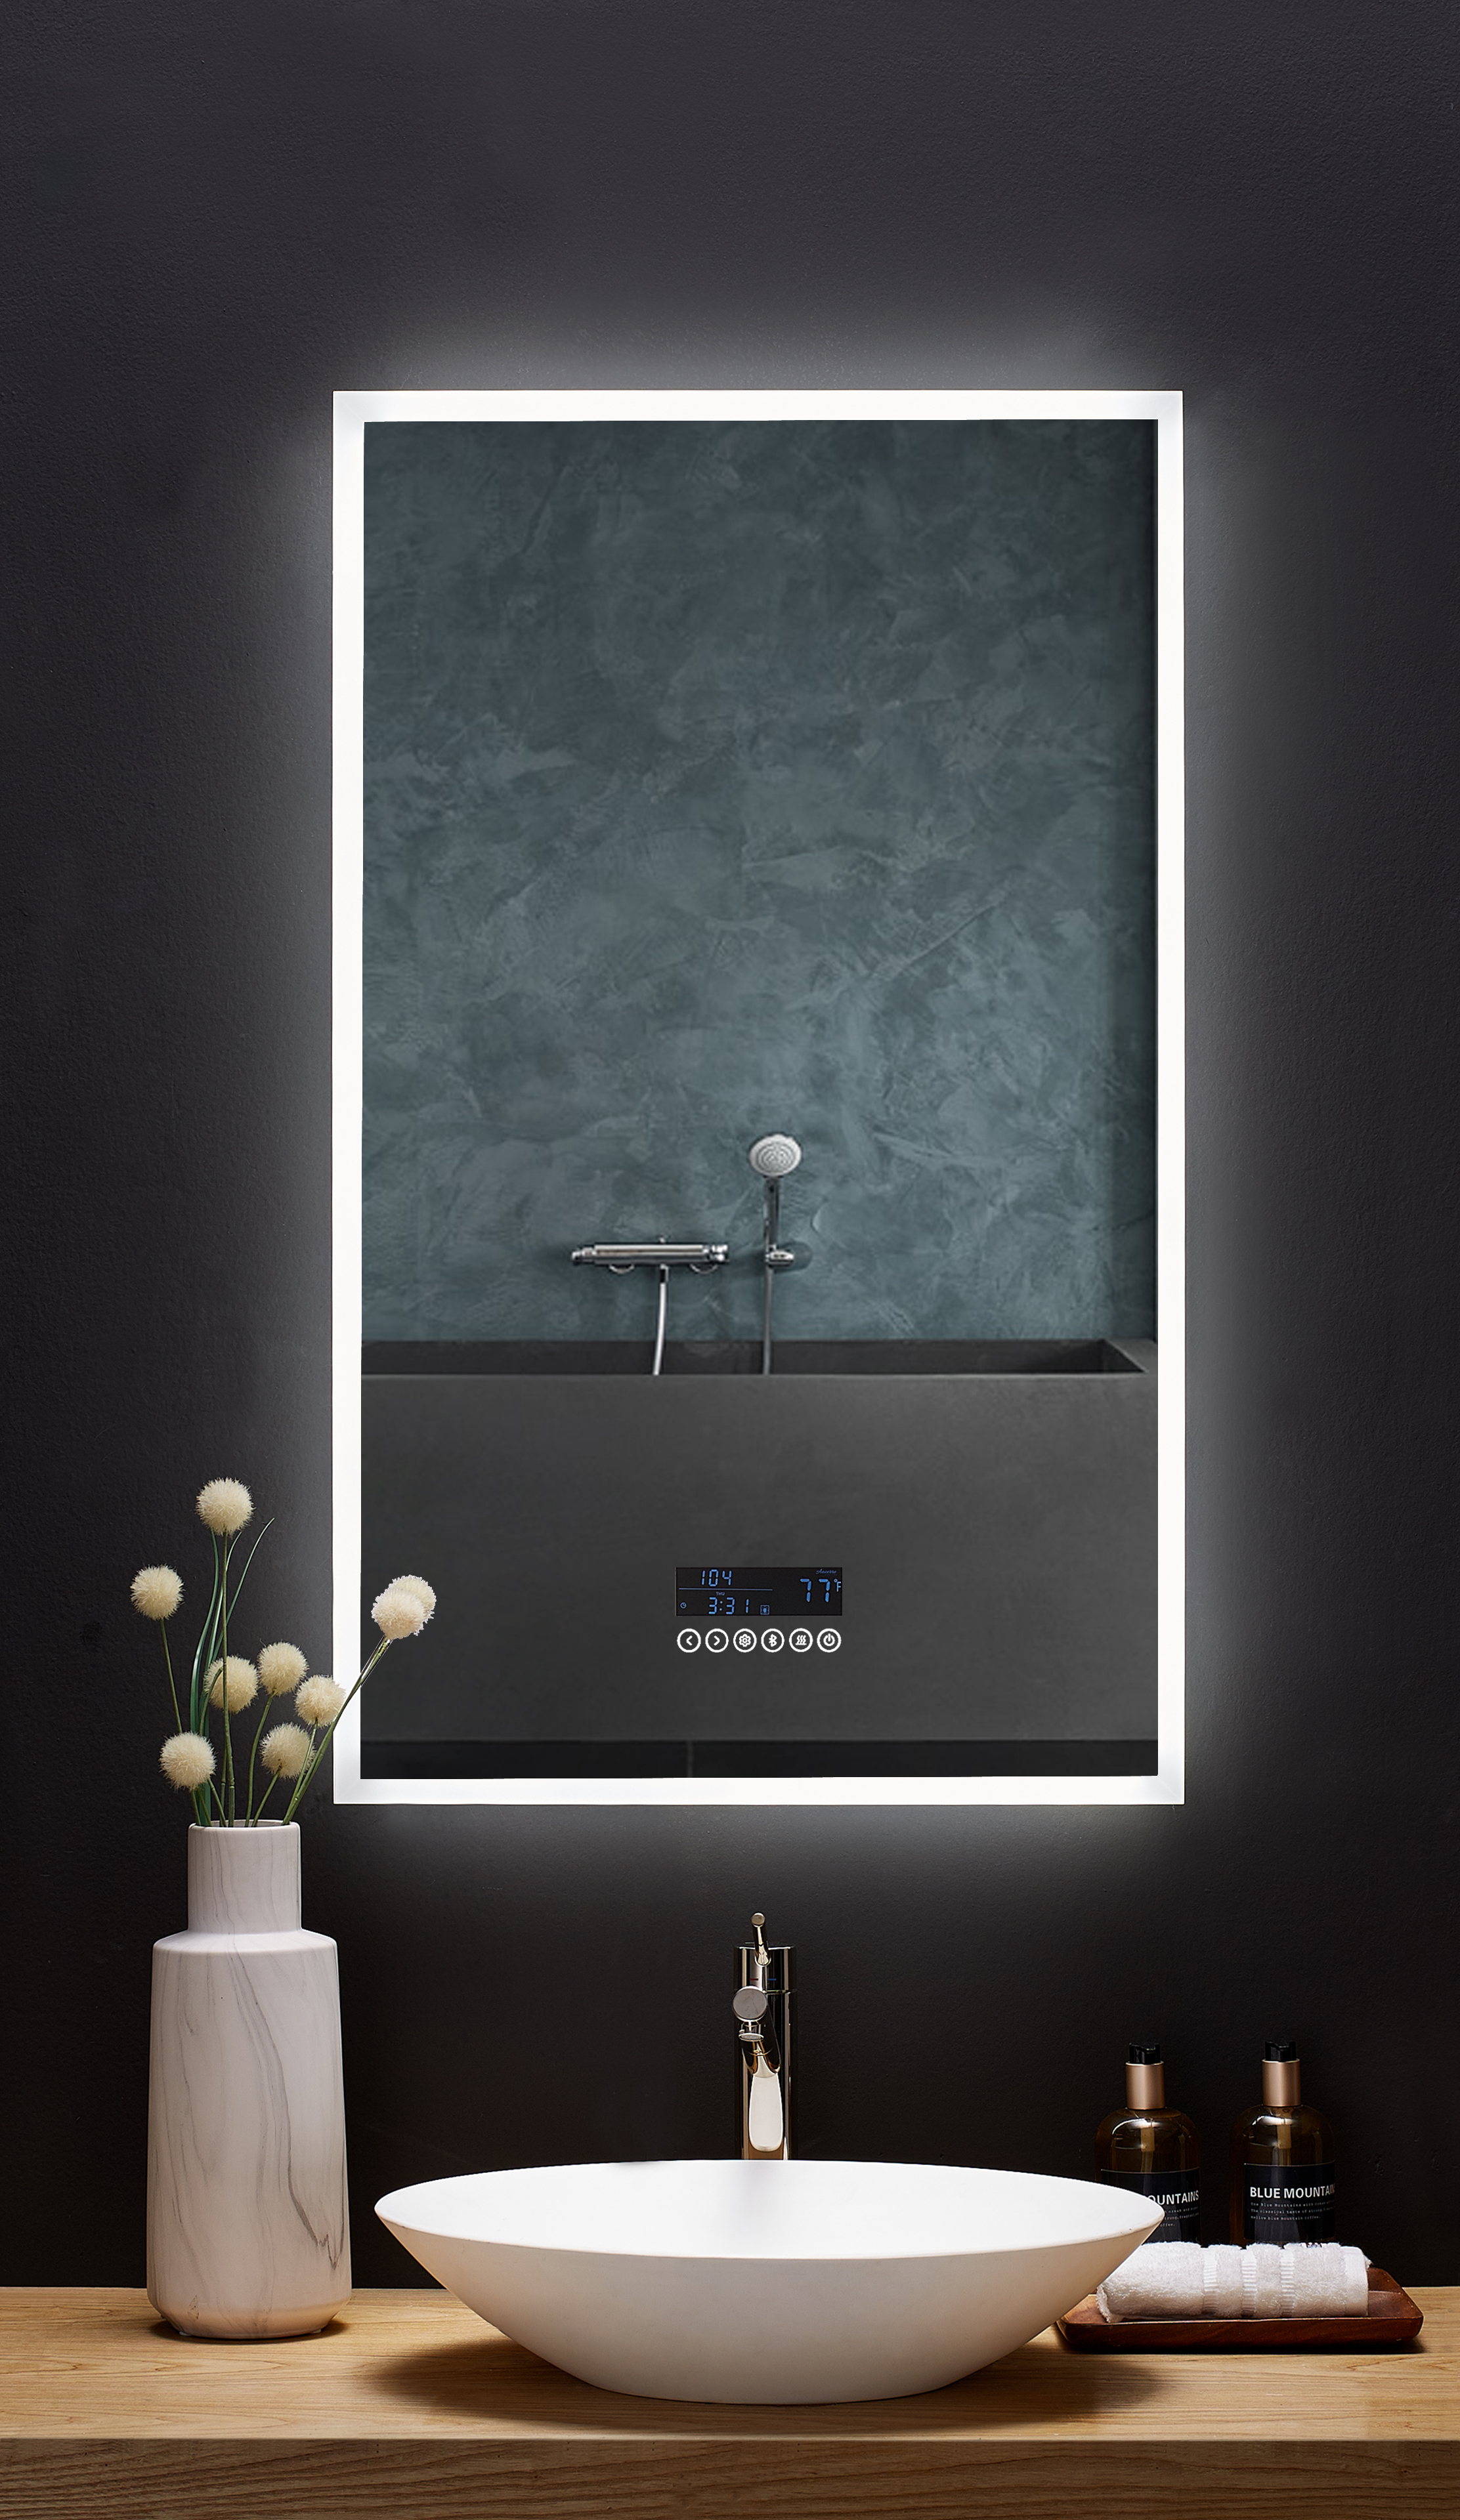 24 in. x 40 in. LED Frameless Mirror with Bluetooth, Defogger and Digital Display